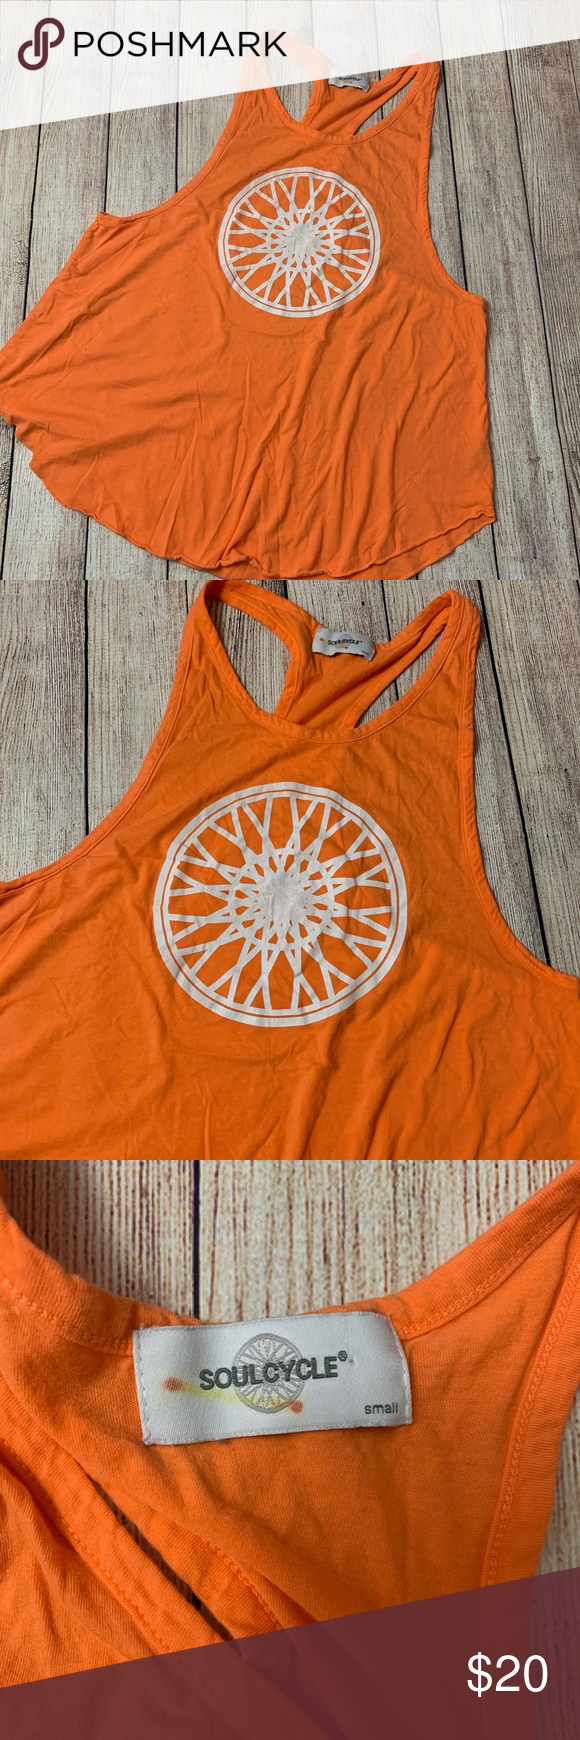 🛍 Soulcycle Orange Racerback Tank Top - 0125 Soulcycle Orange Racerback Tank Top. Size Small.   Condition:  🔸Pre-owned in good condition. No stains, rips or damage.   Approximate Measurements Laying Flat Pit to Pit: 19